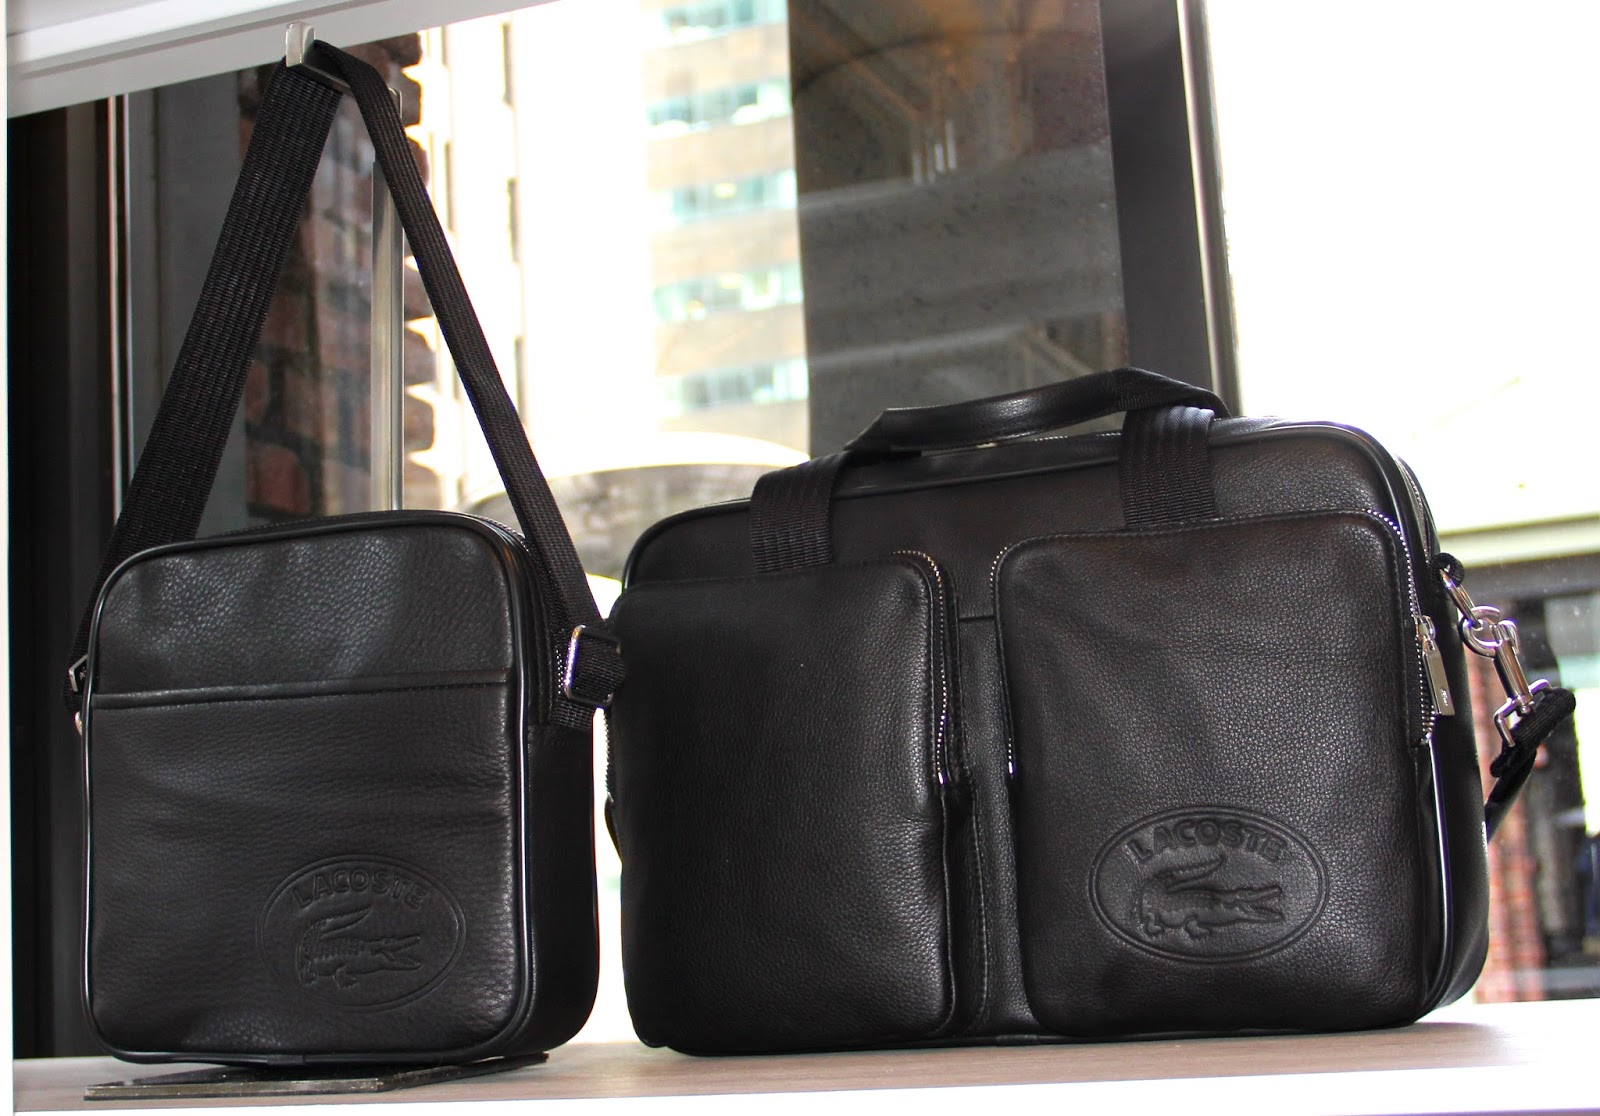 men's Classic Duffel and on left-reminds us of the classic camera bag shape.